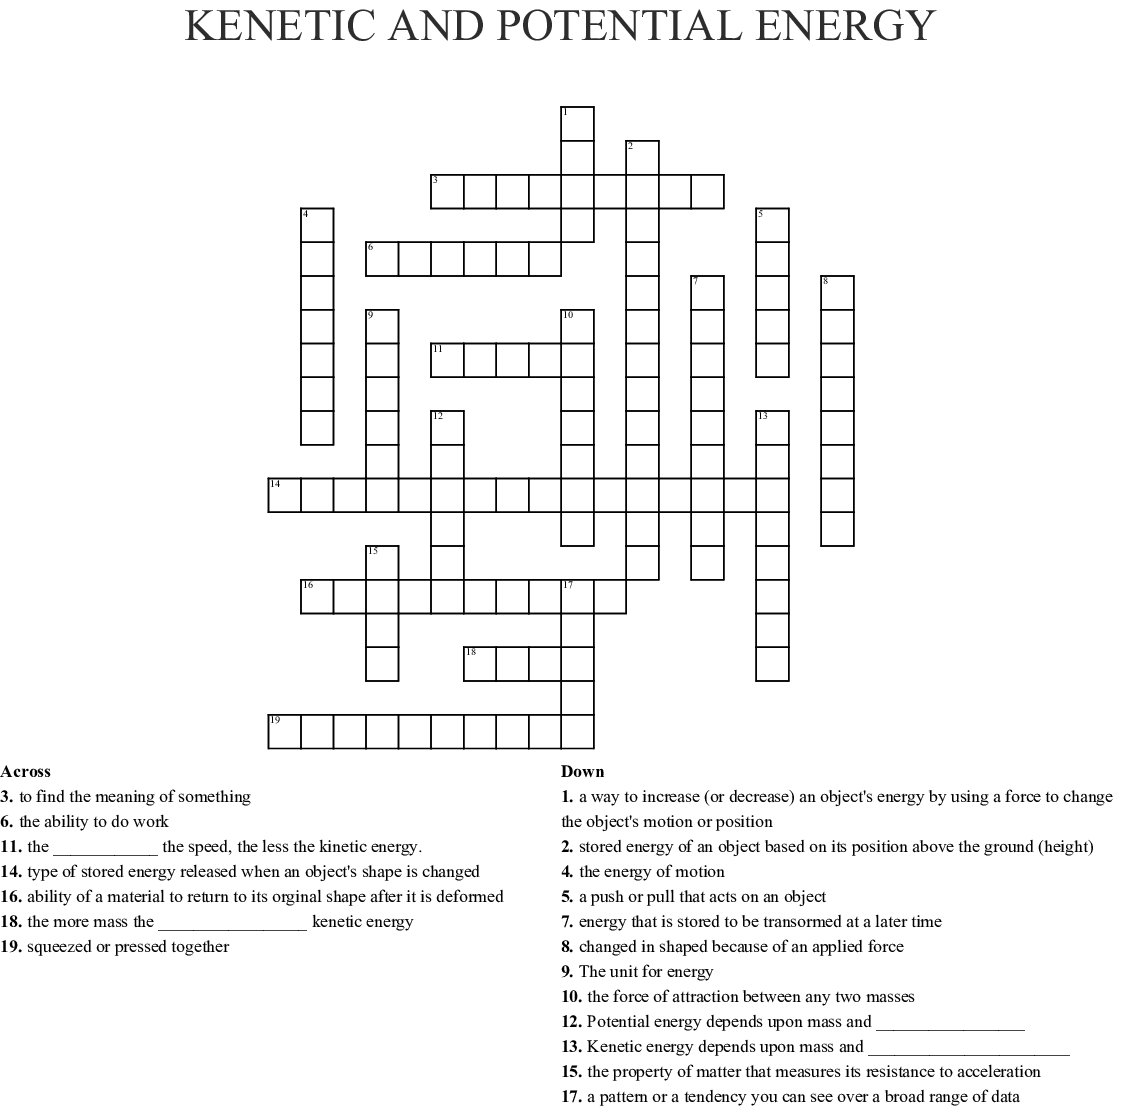 Kinetic and Potential Energy Crossword - WordMint